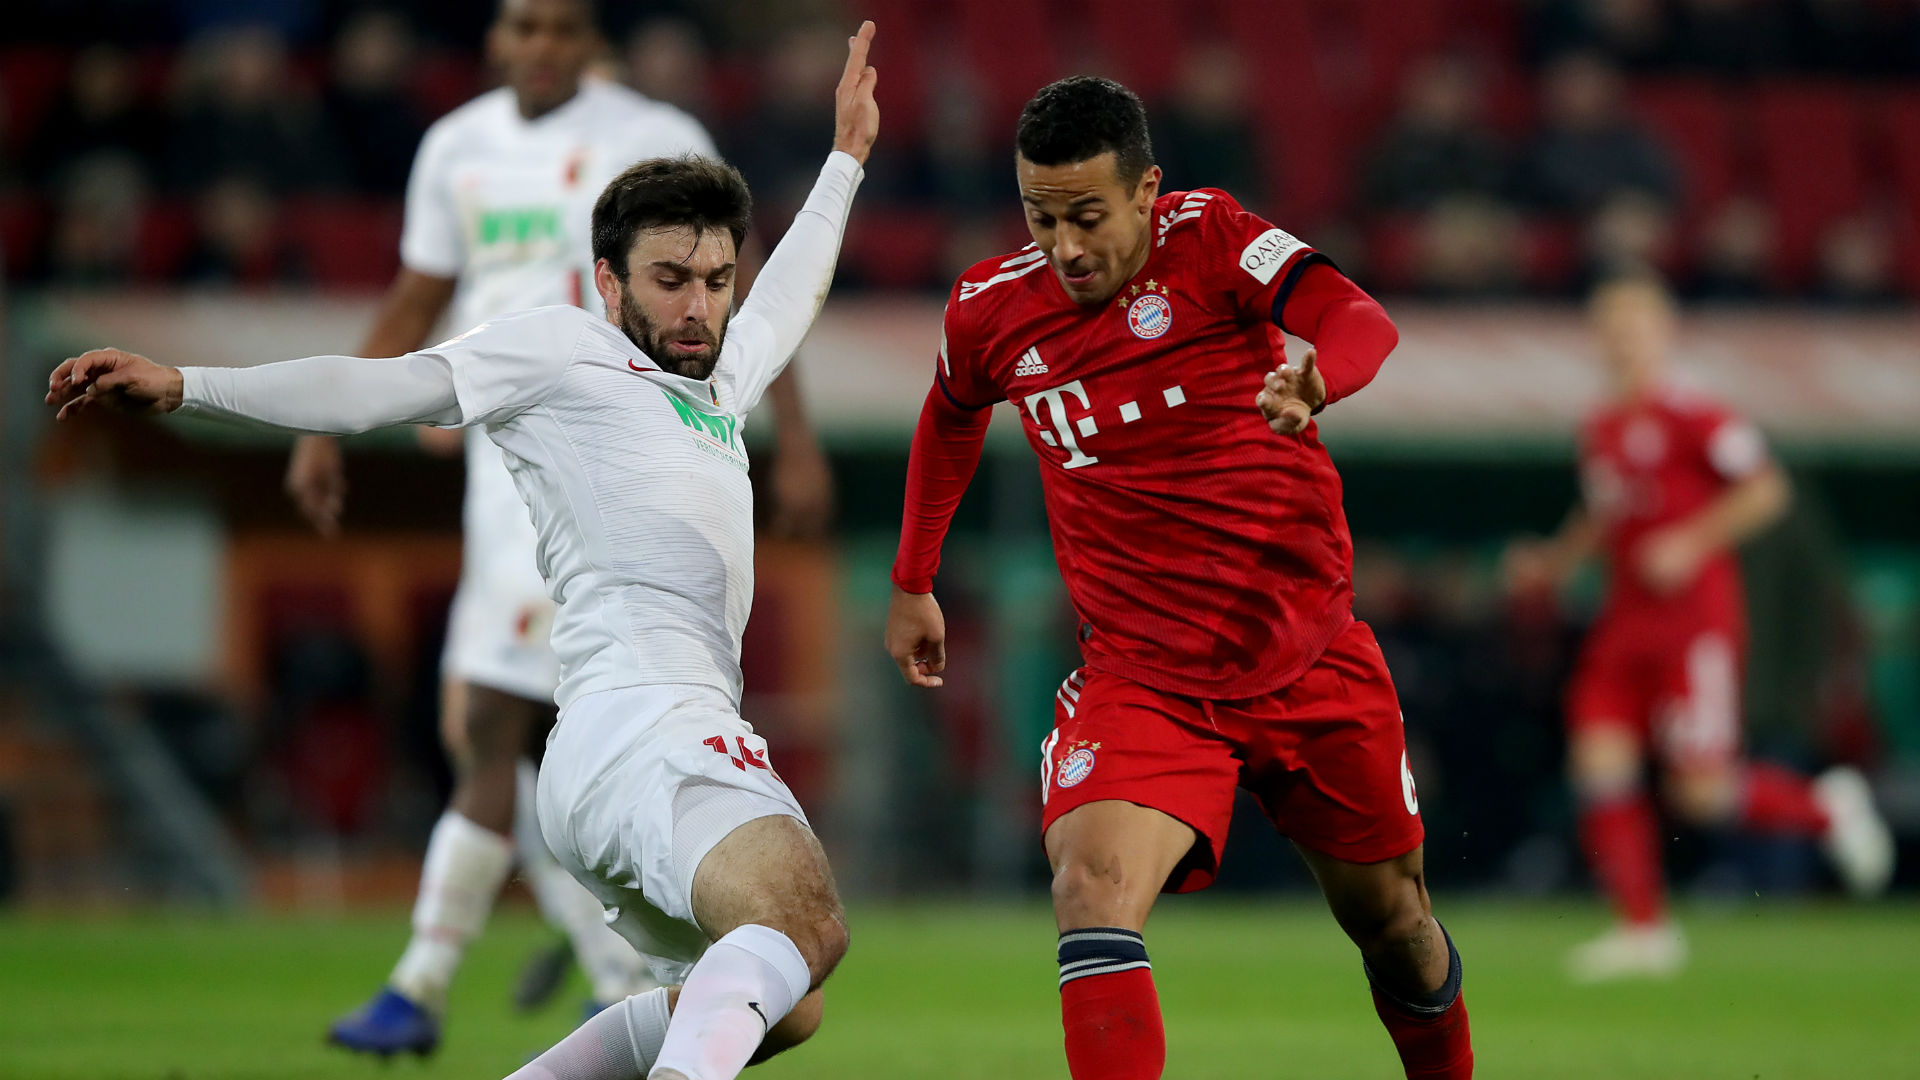 Liverpool on the mind? Niko Kovac claims Bayern may have been overlooking Augsburg | Sporting News